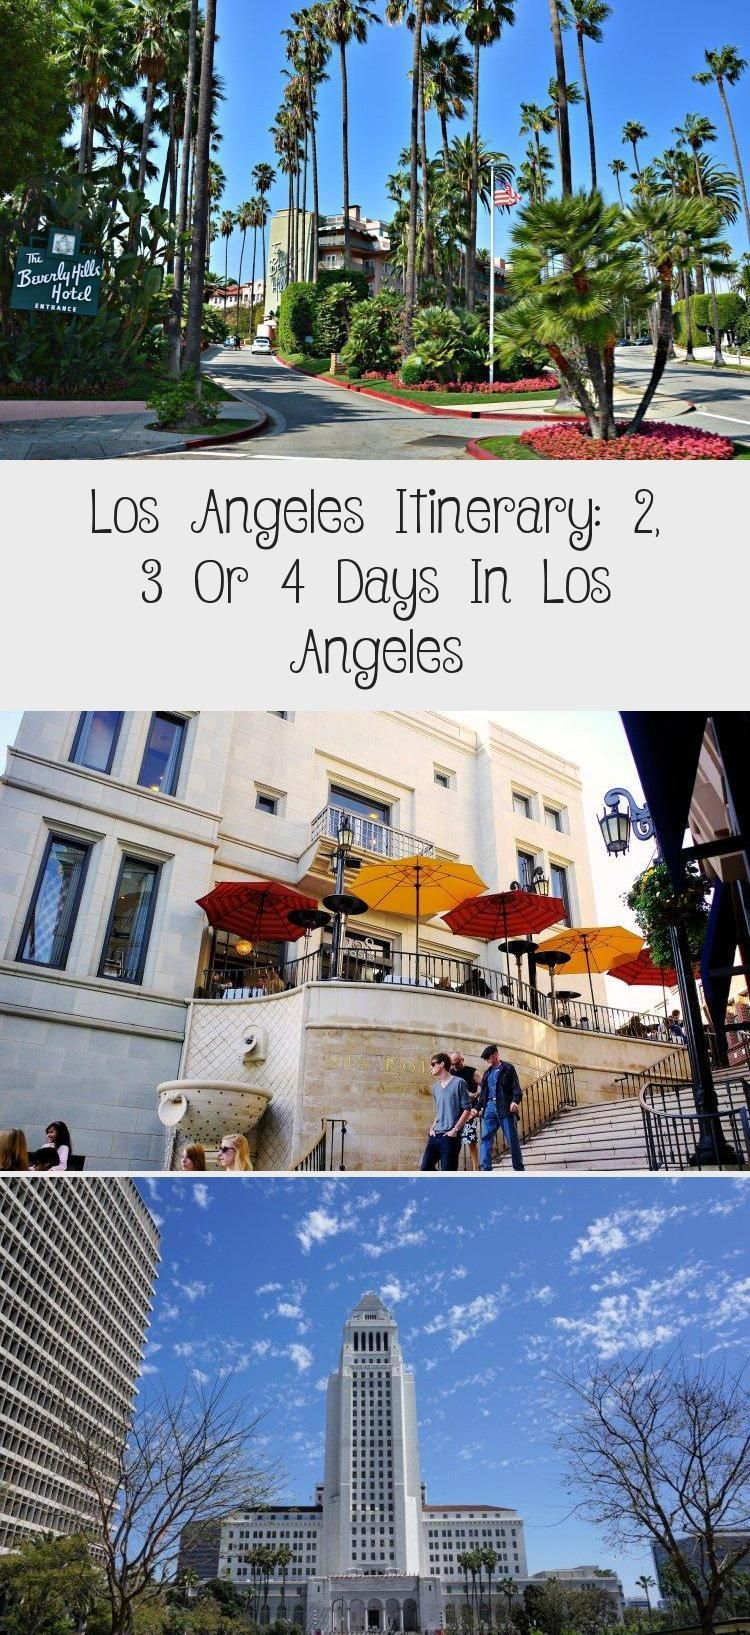 images?q=tbn:ANd9GcQh_l3eQ5xwiPy07kGEXjmjgmBKBRB7H2mRxCGhv1tFWg5c_mWT Great Vacation Ideas Los Angeles Secret Now @capturingmomentsphotography.net